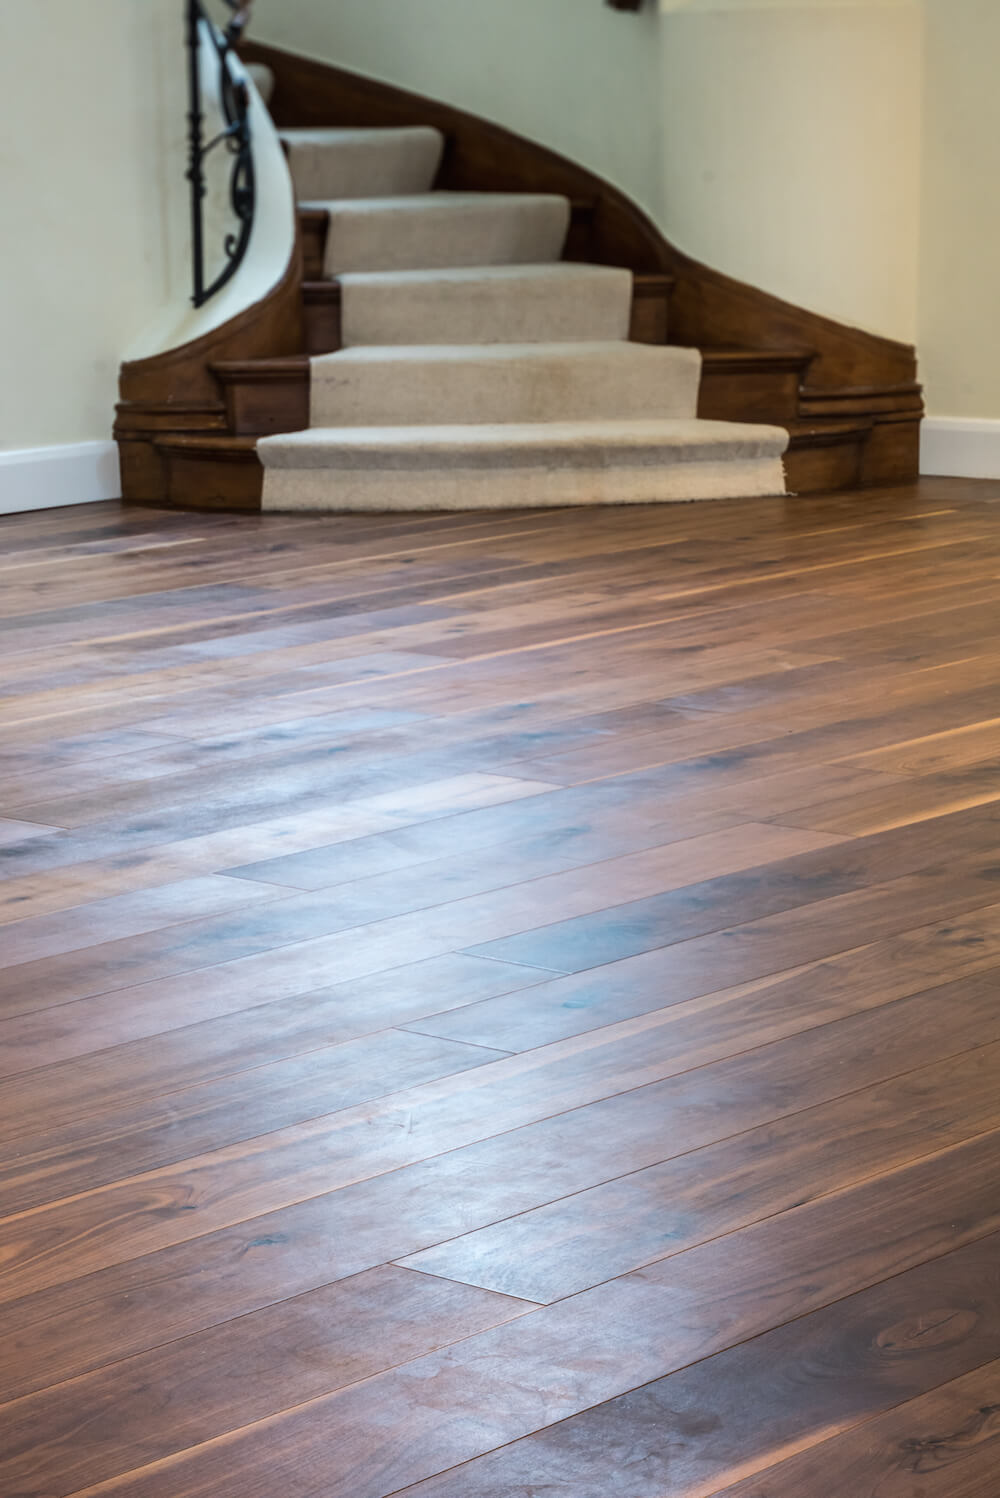 fitted wooden flooring